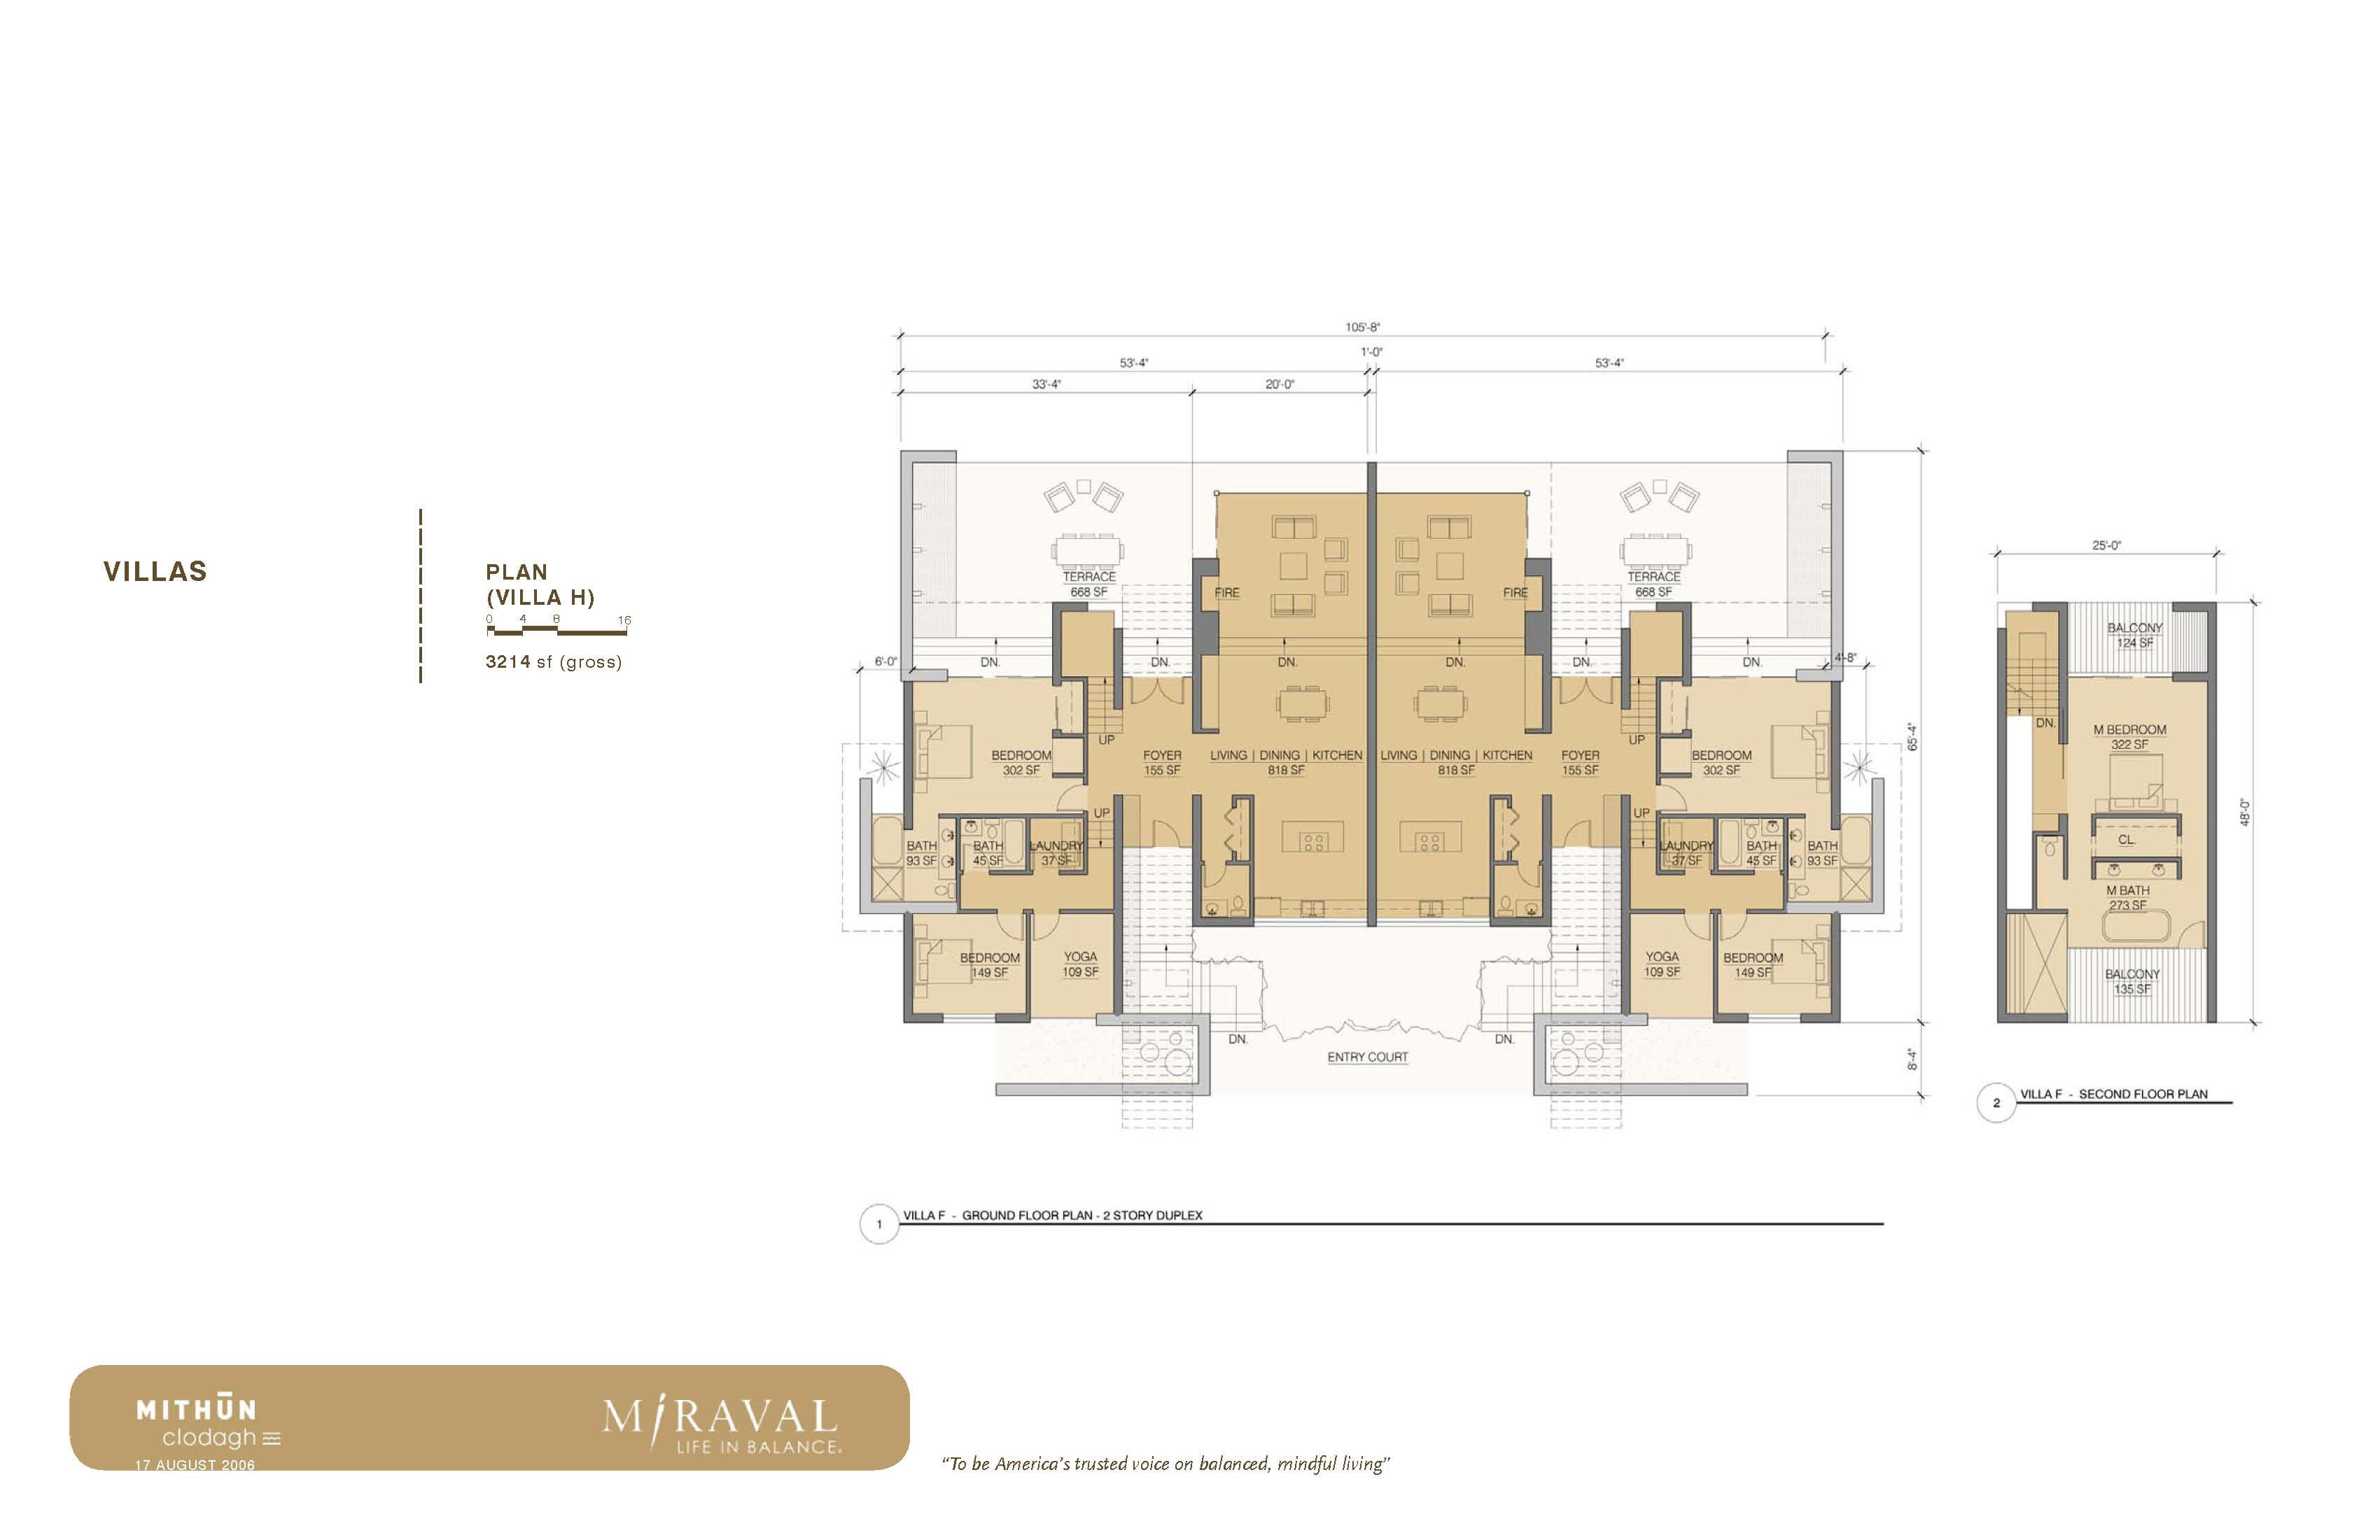 Miraval Villa Floor Plan Kli Companies Real Estate